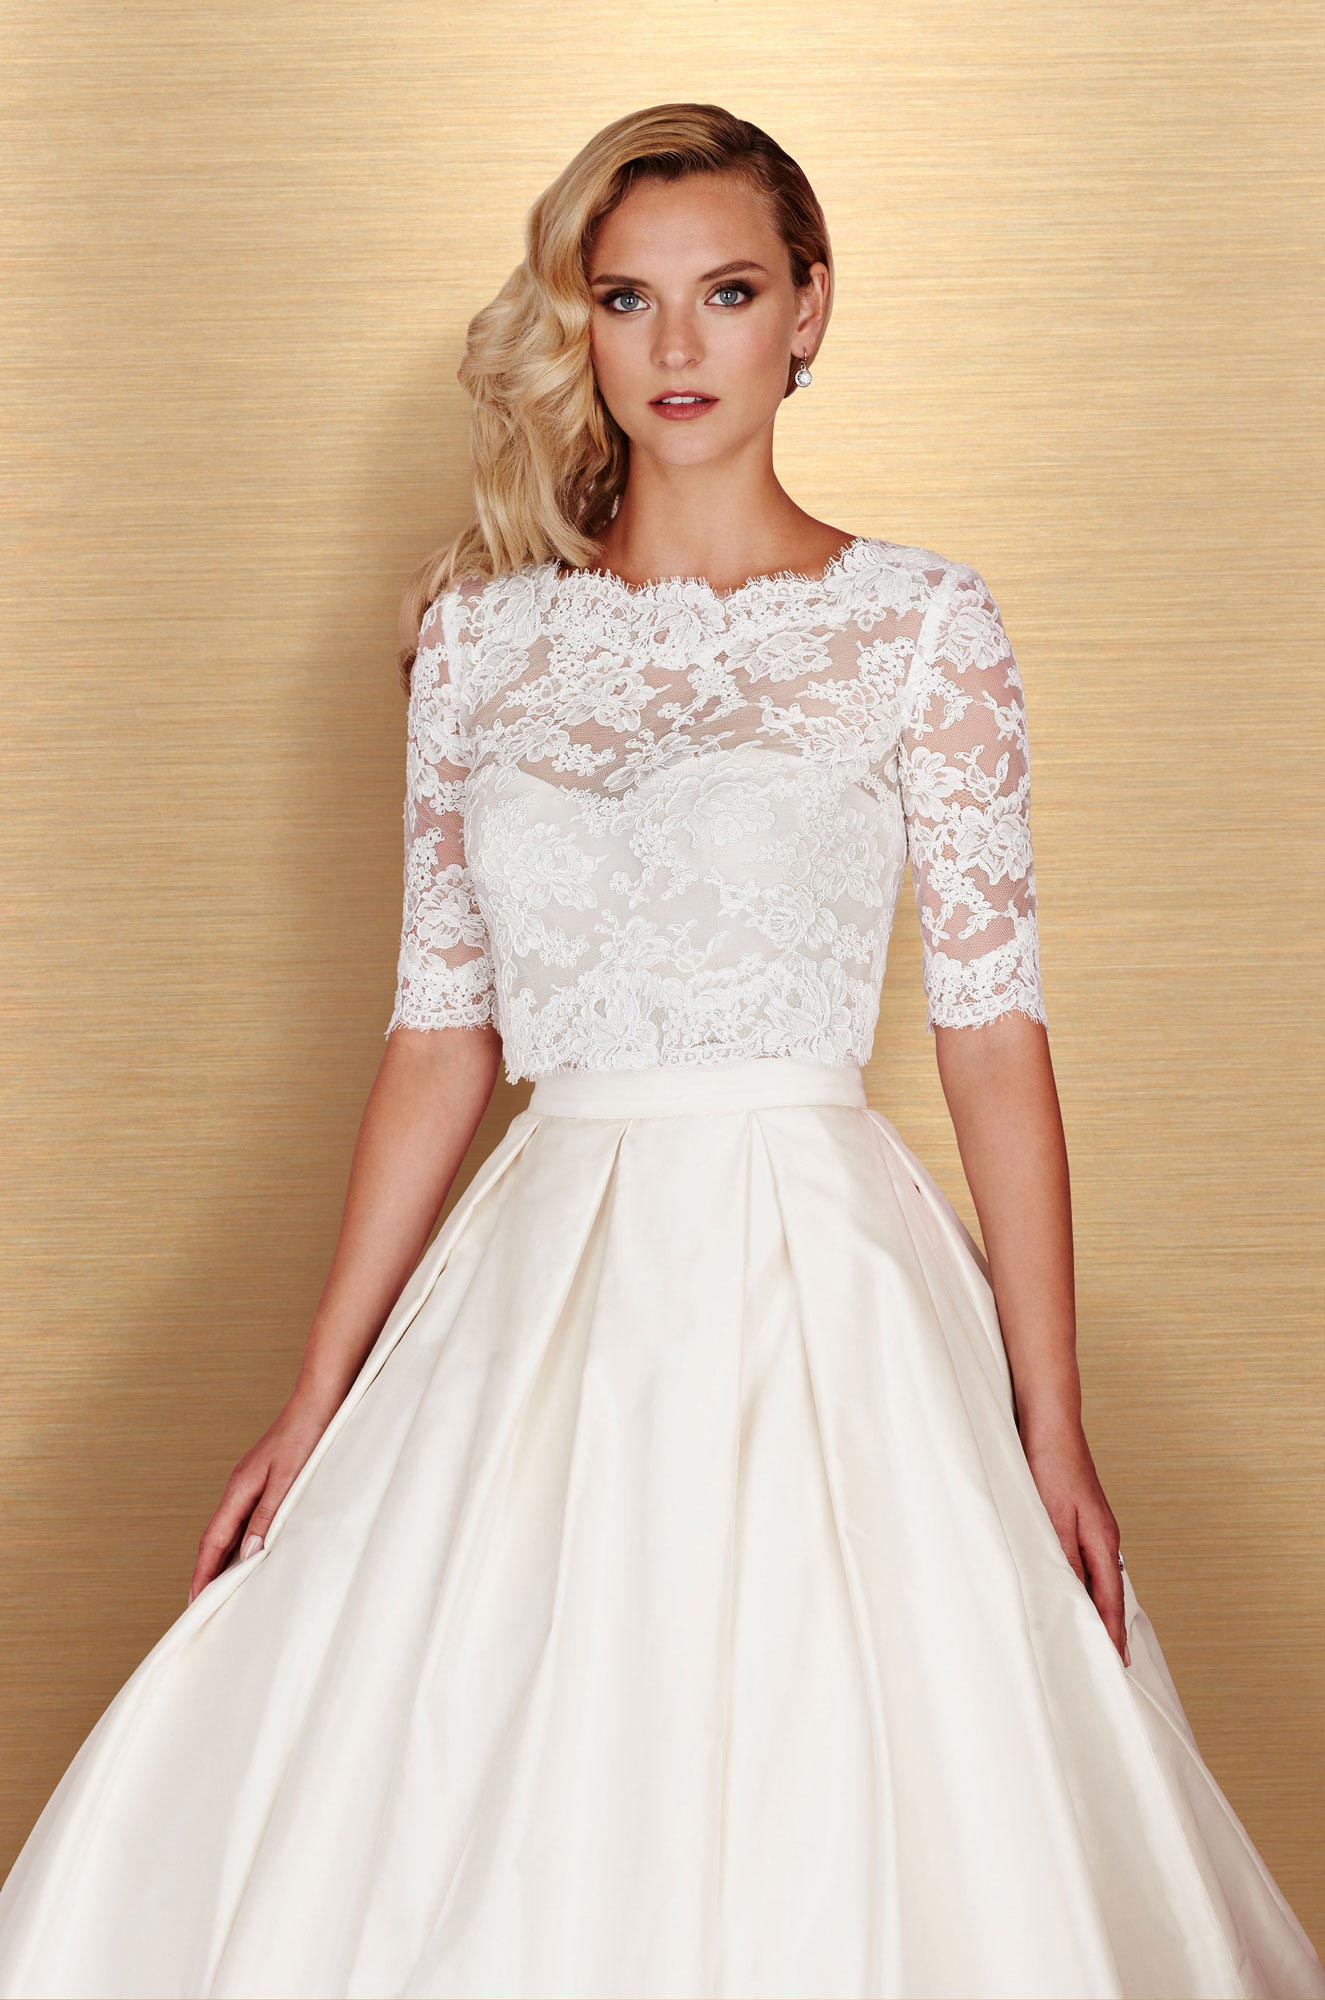 Cropped silk wedding dress style 4667 paloma blanca junglespirit Choice Image